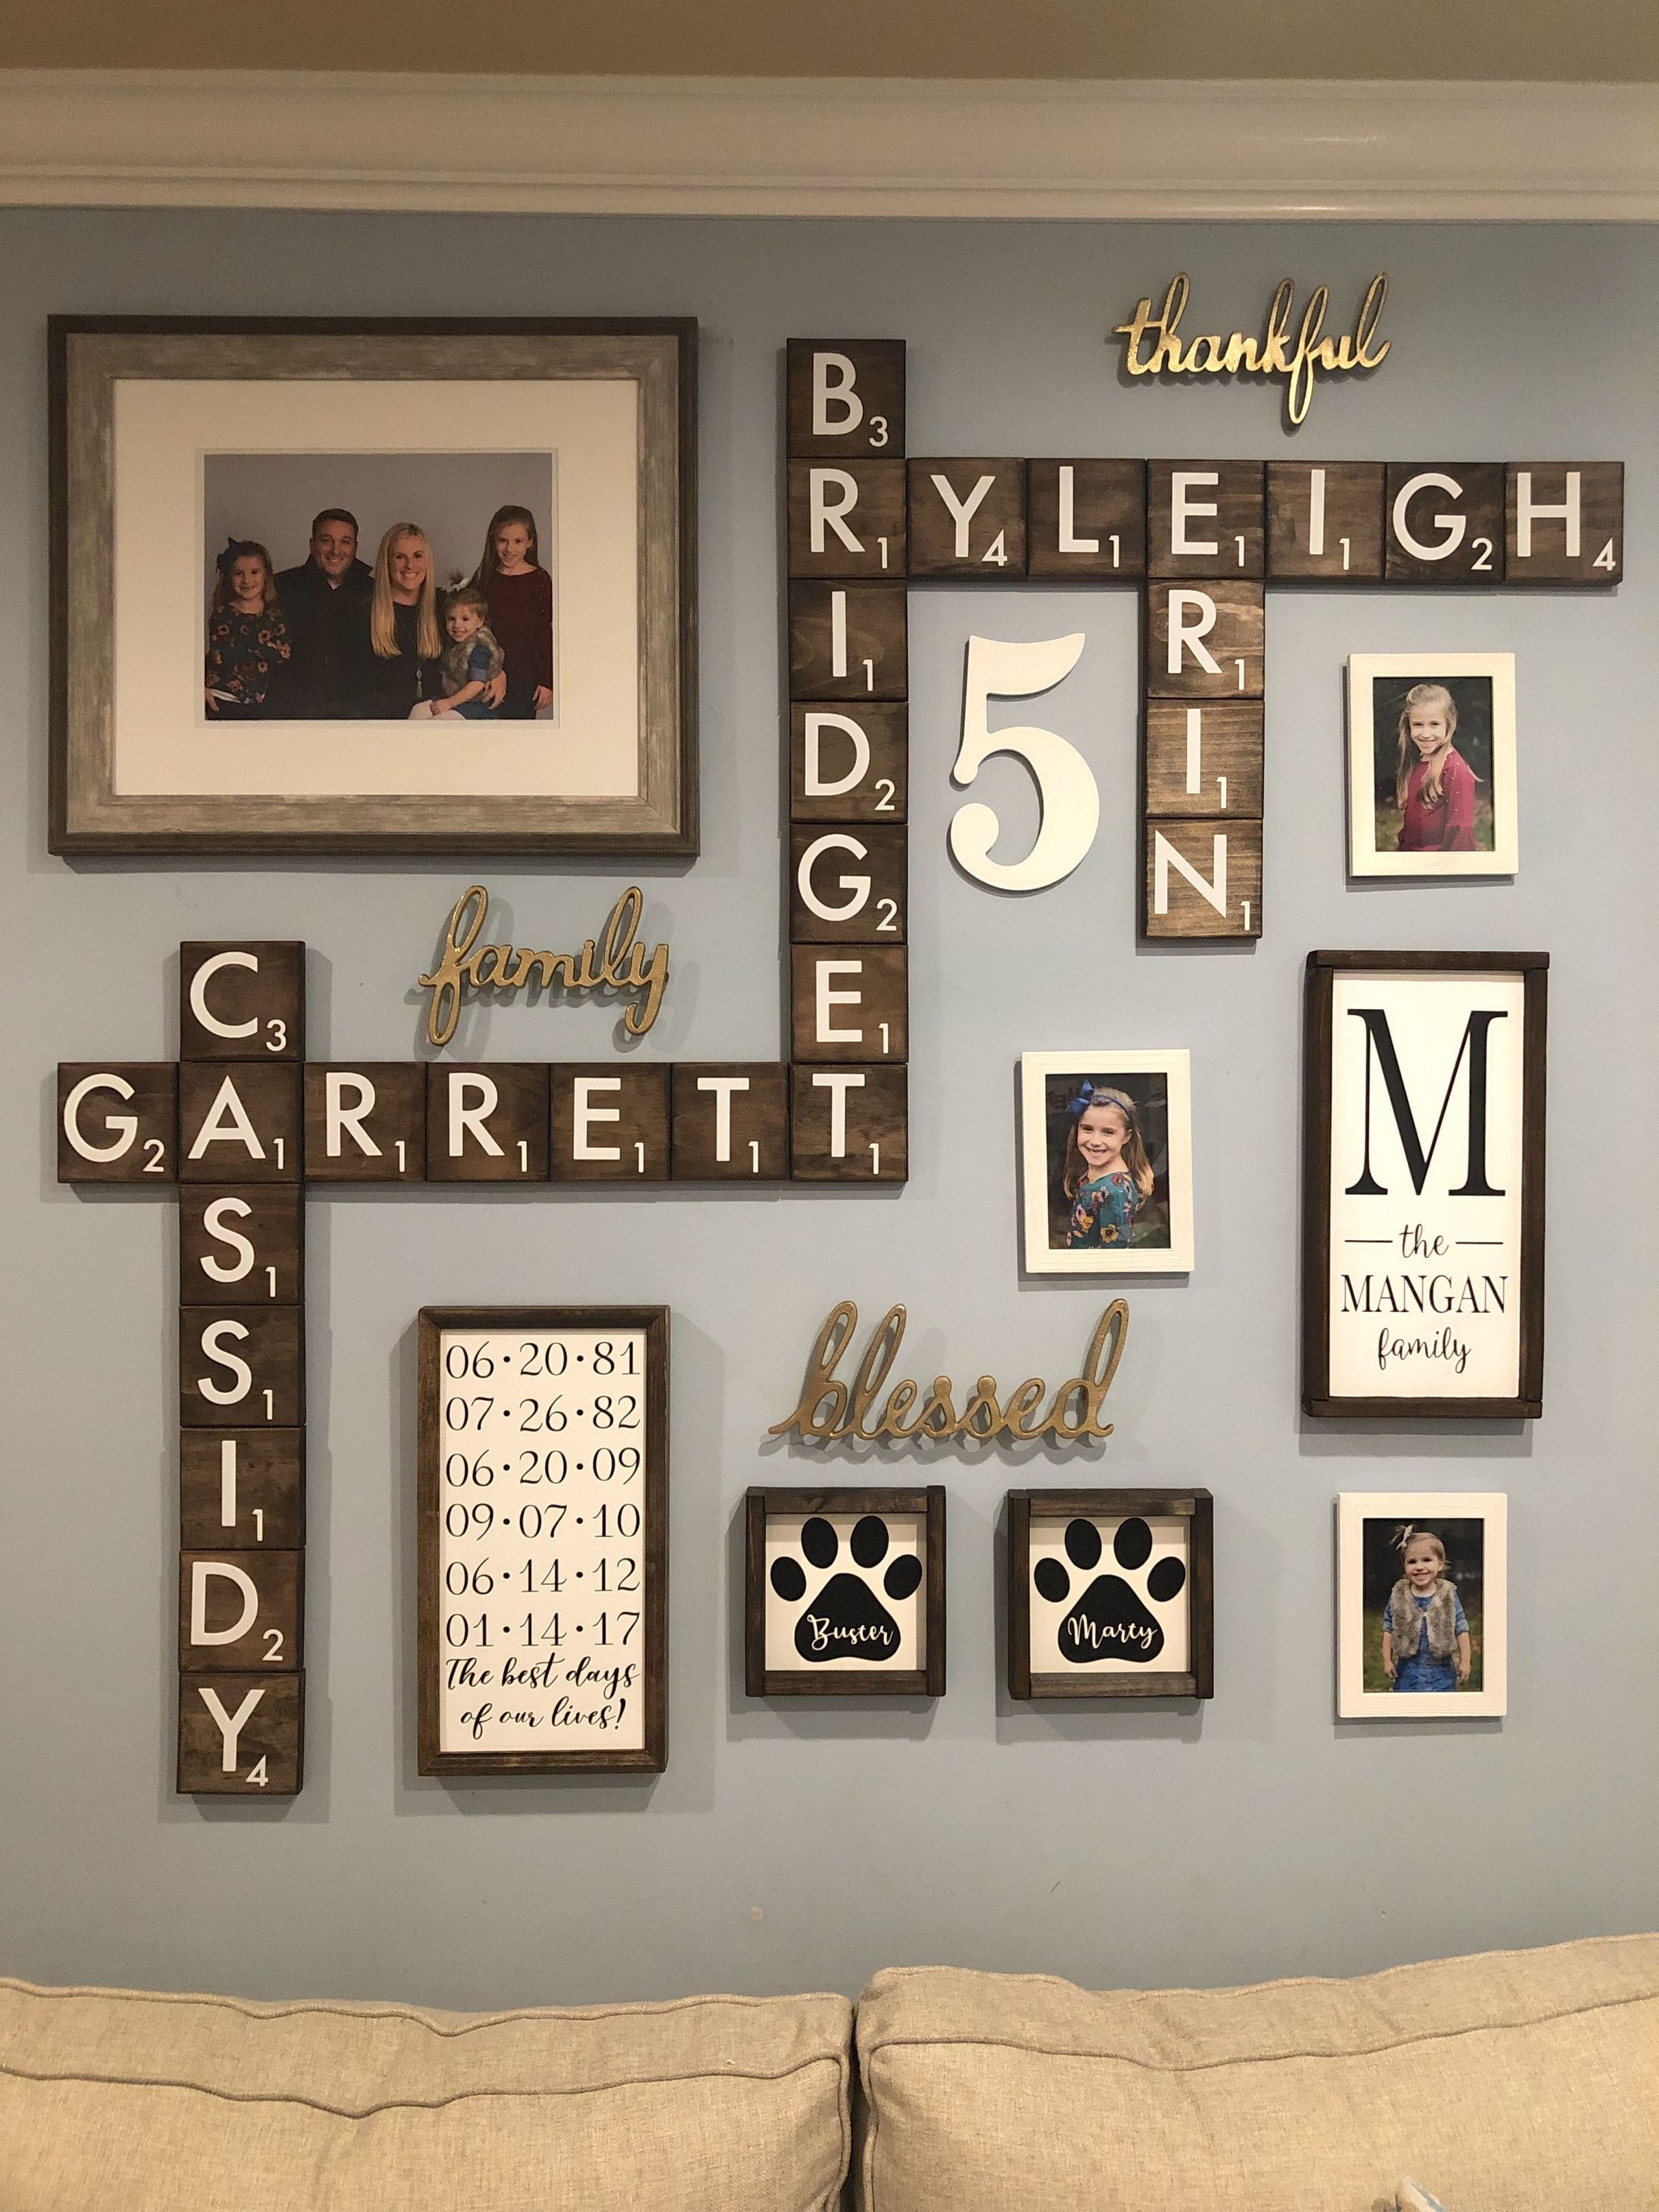 Decor Number Ideas Decor Room Ideas Diy Decor Ideas Brown Leather Sofa 33 De Family Wall Decor Family Pictures On Wall Family Wall Art Homemade wall decoration for living room